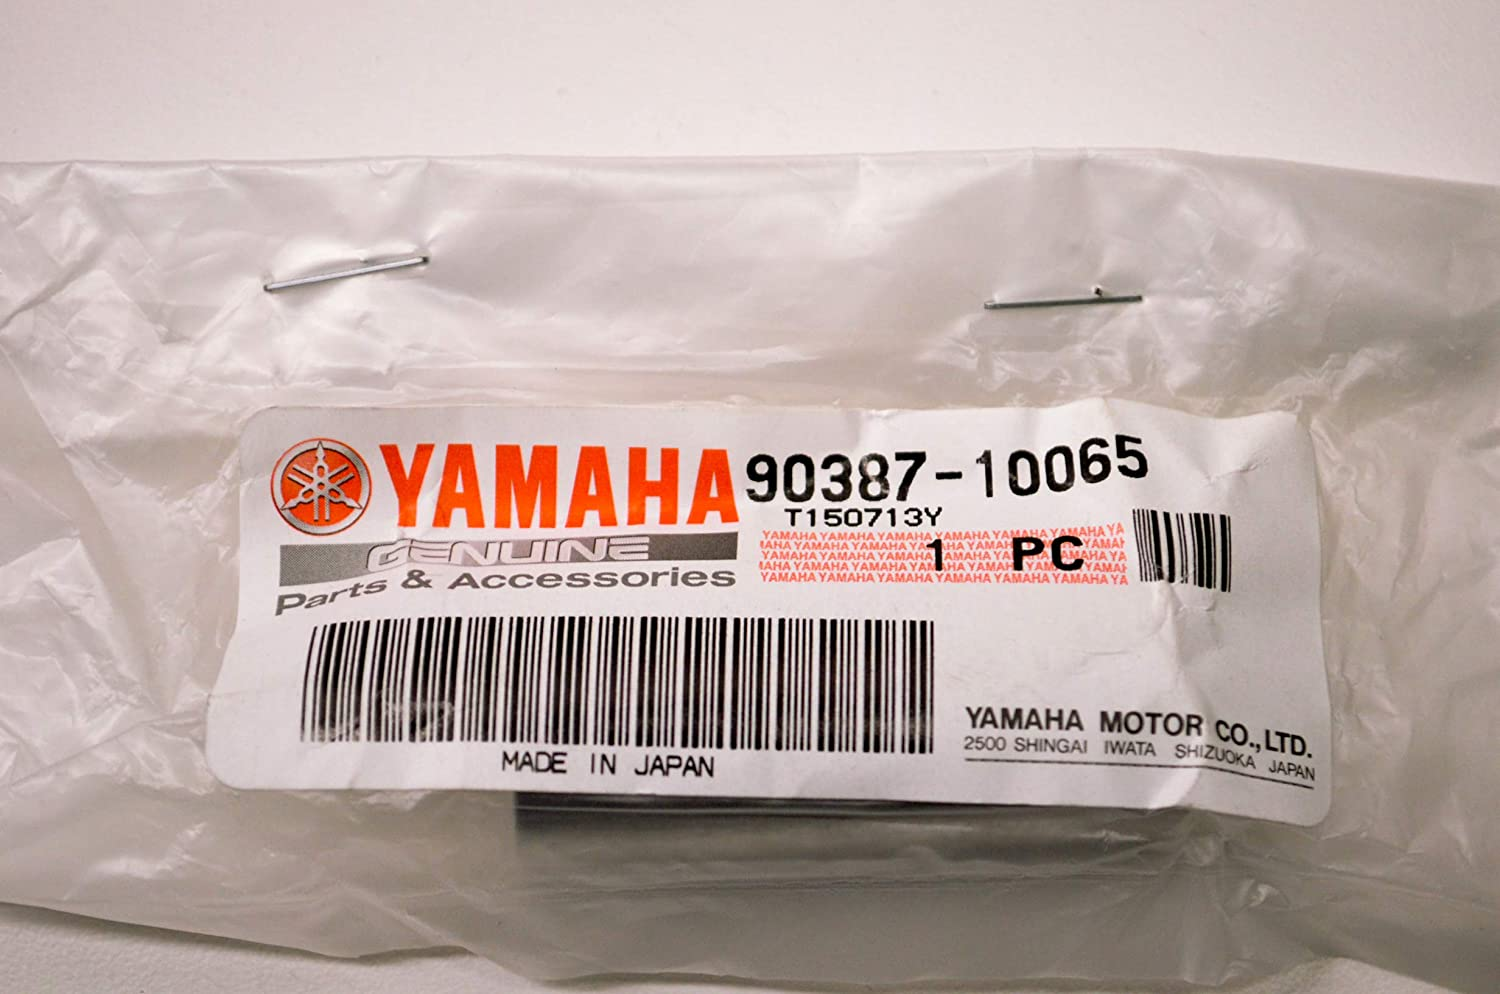 Yamaha 90387-10065-00 Collar; 903871006500 Made by Yamaha